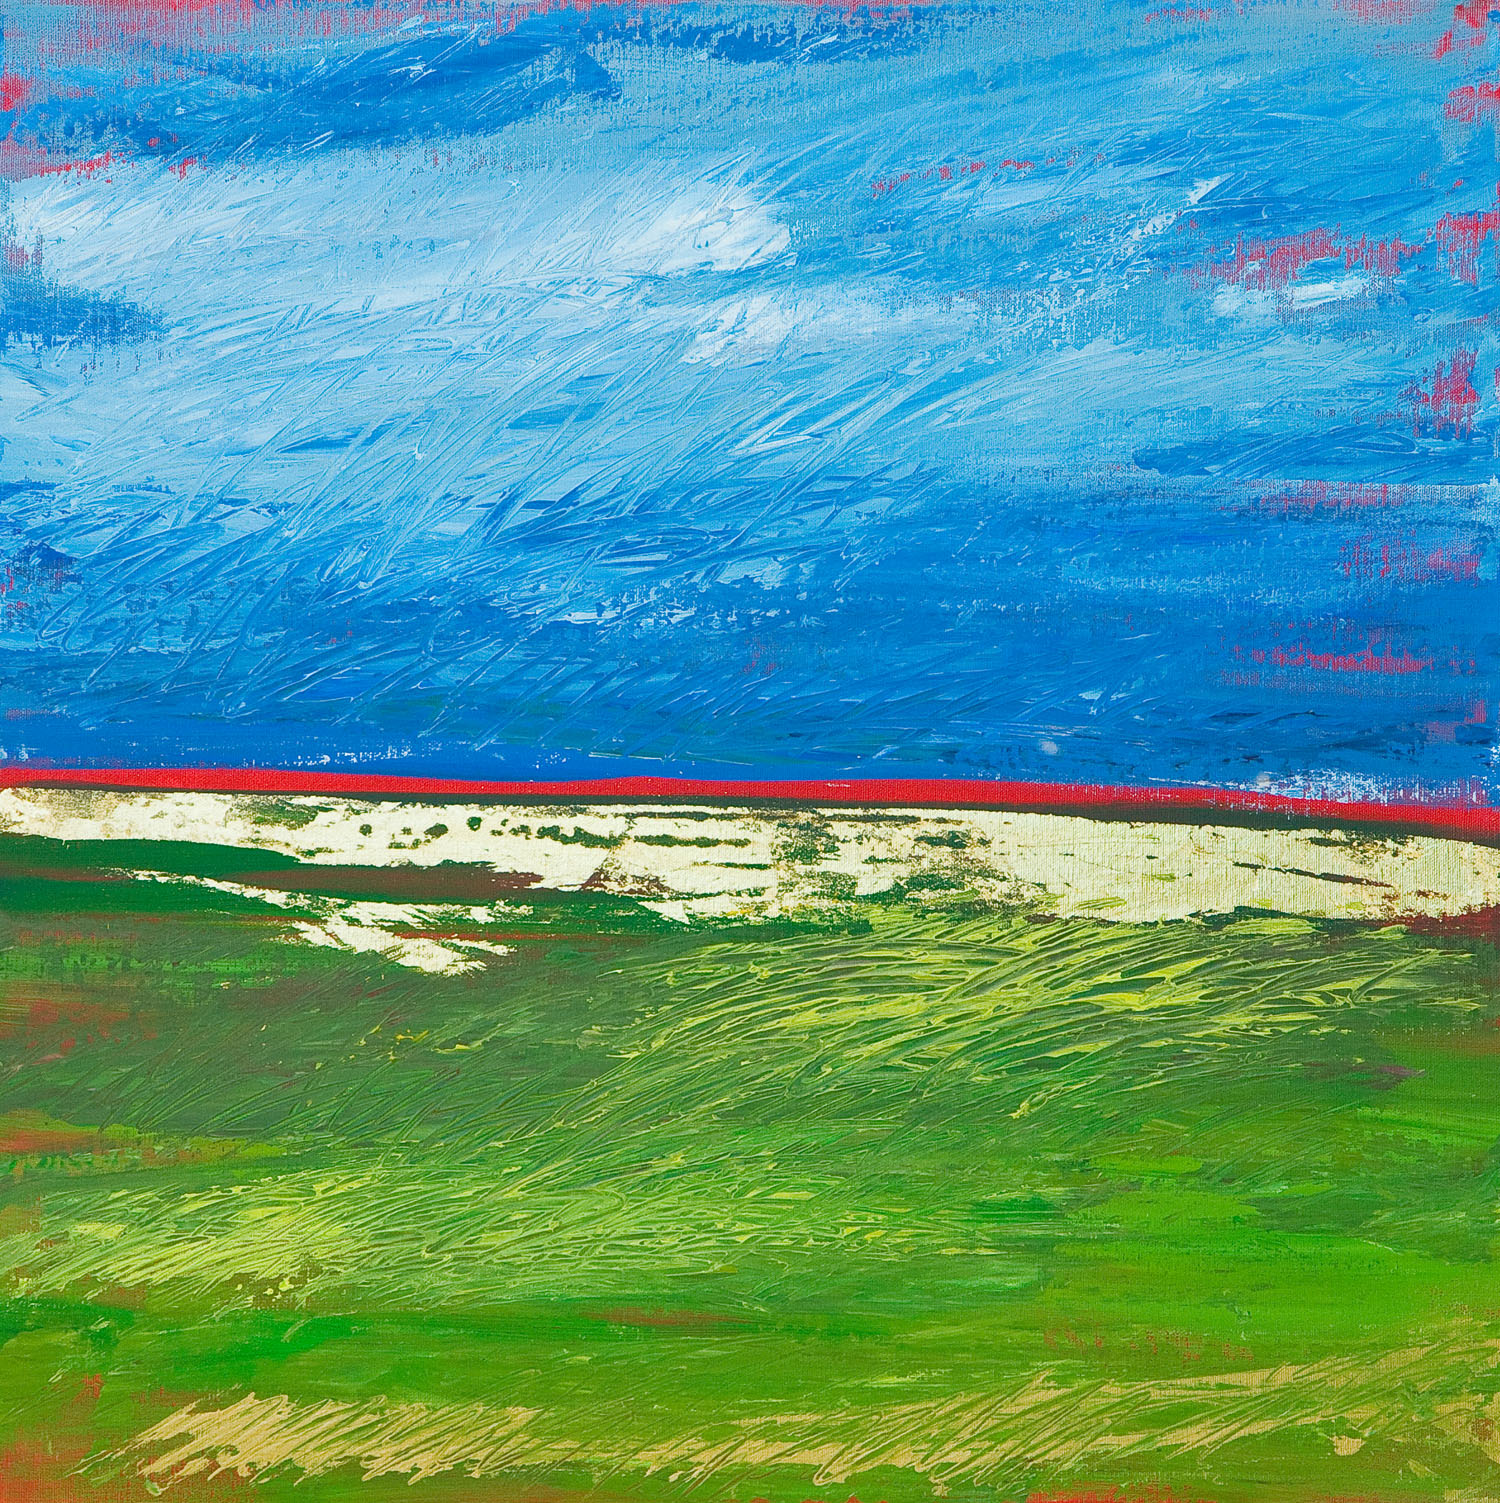 tracey-j-marshall-abstract-landscape-0950.jpg